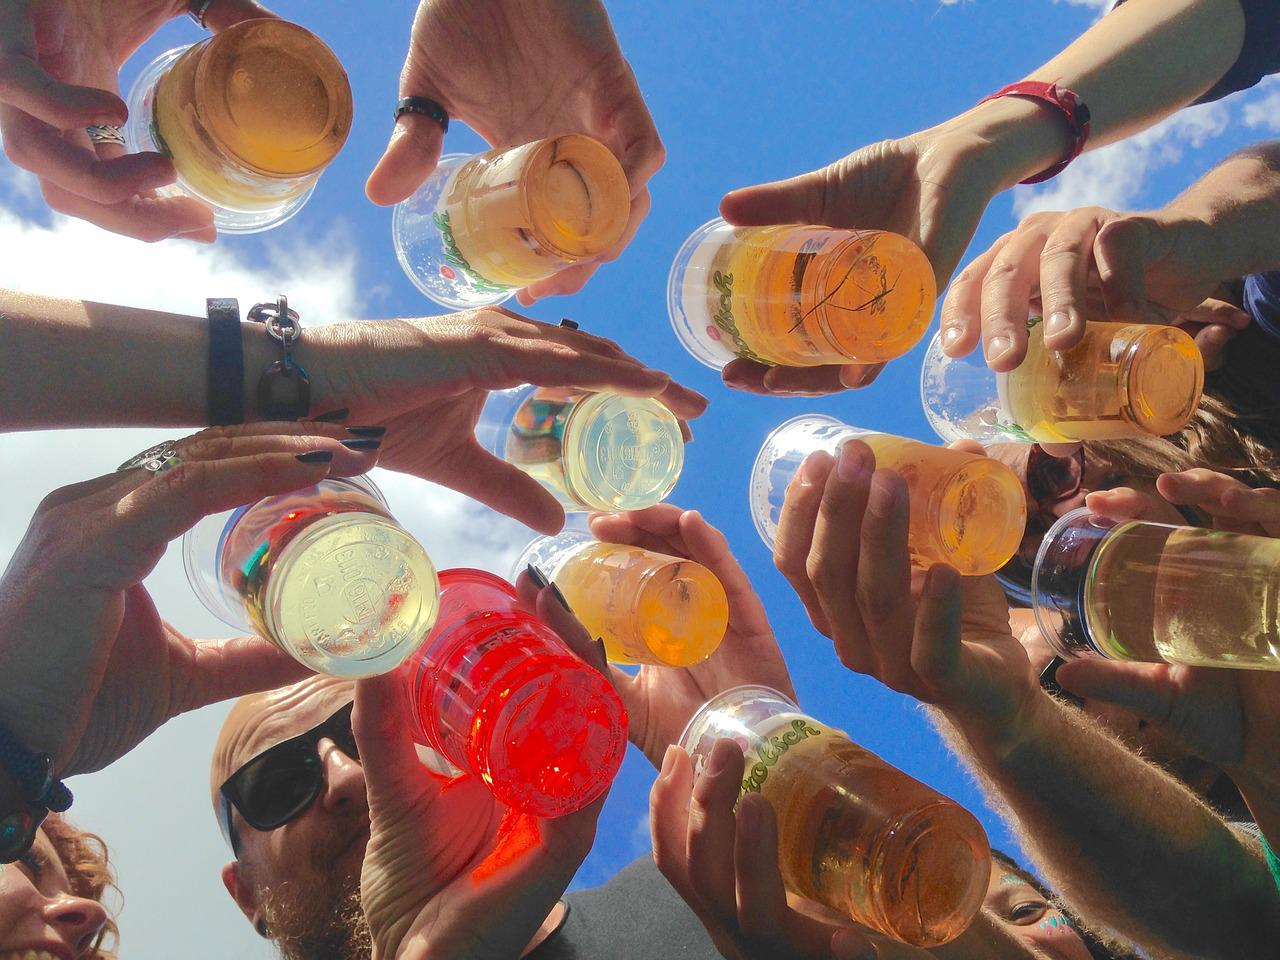 Friends Party Drinks - Free photo on Pixabay